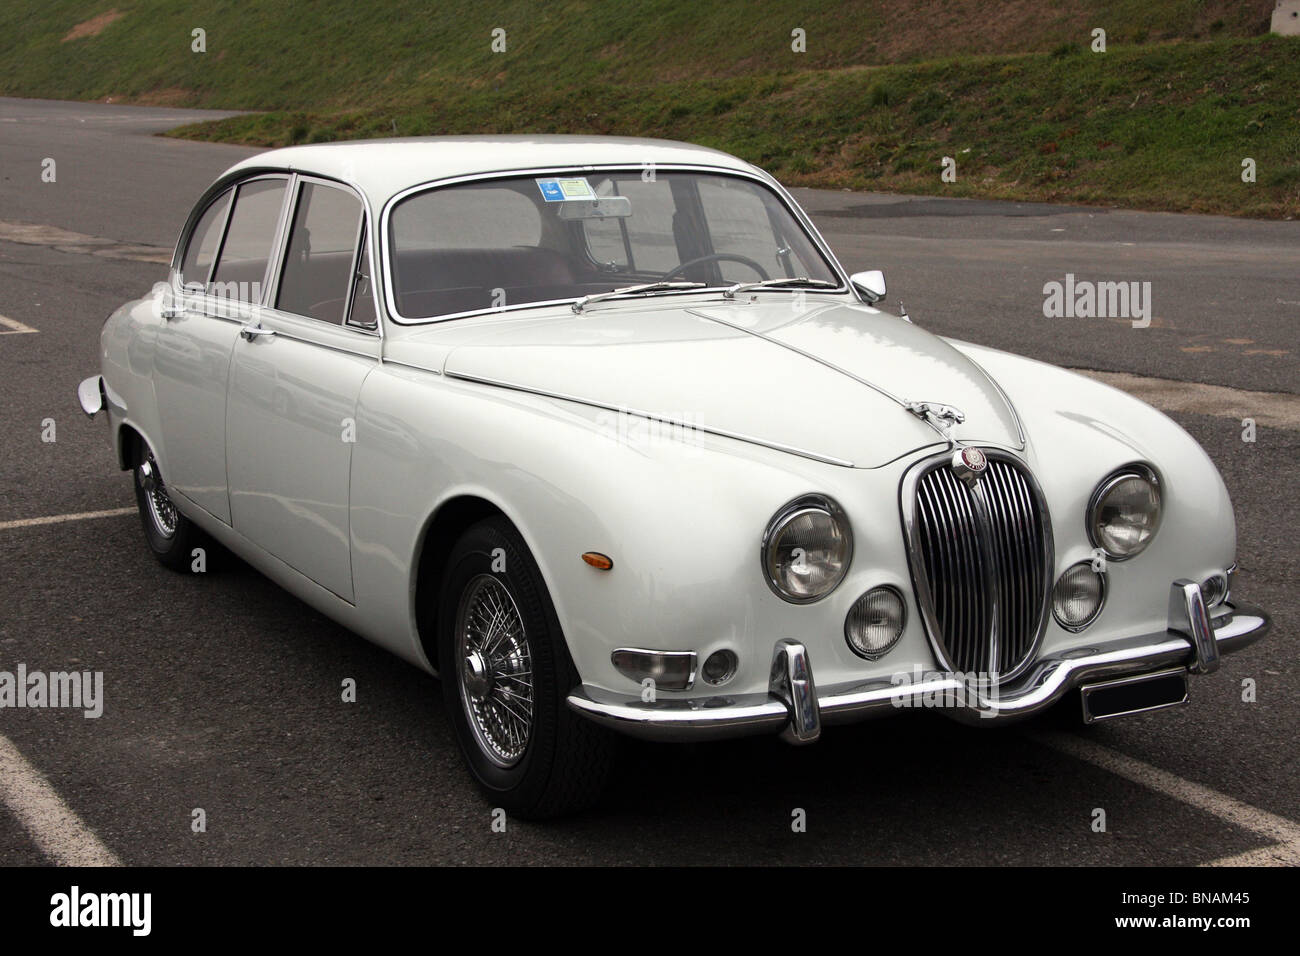 classic white jaguar mk2 saloon stock photo royalty free image 30353461 alamy. Black Bedroom Furniture Sets. Home Design Ideas